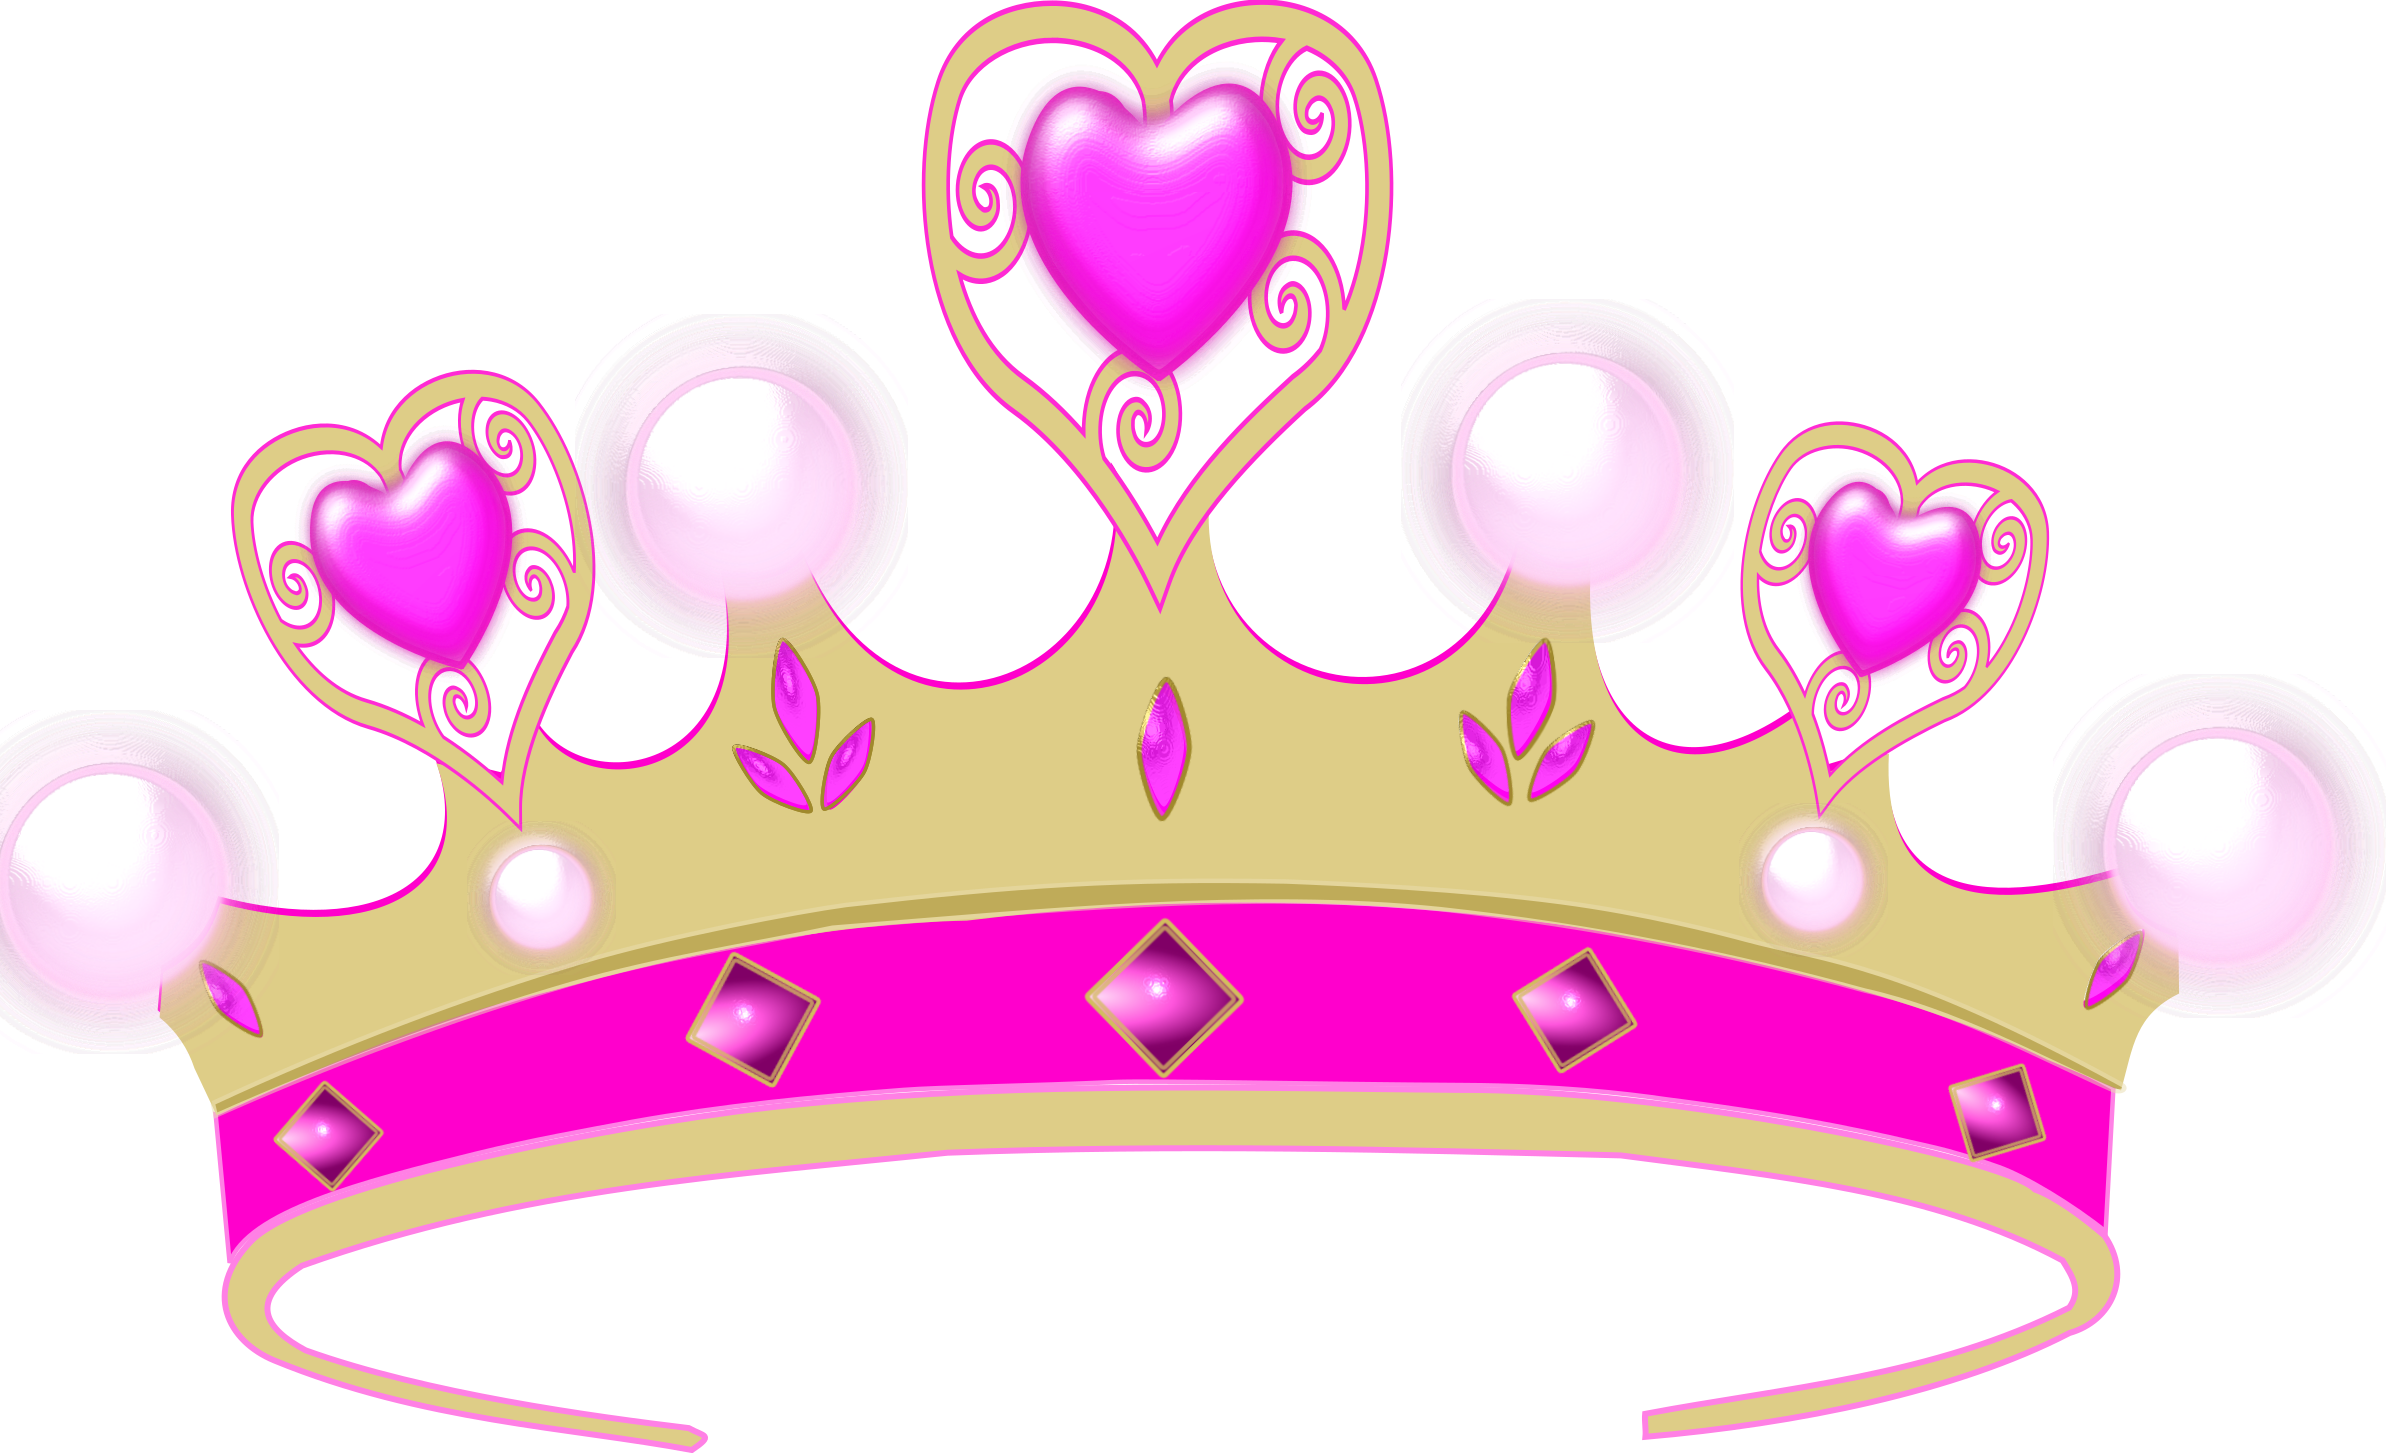 Crown images clipart vector library stock 28+ Collection of Pink Princess Crown Clipart | High quality, free ... vector library stock